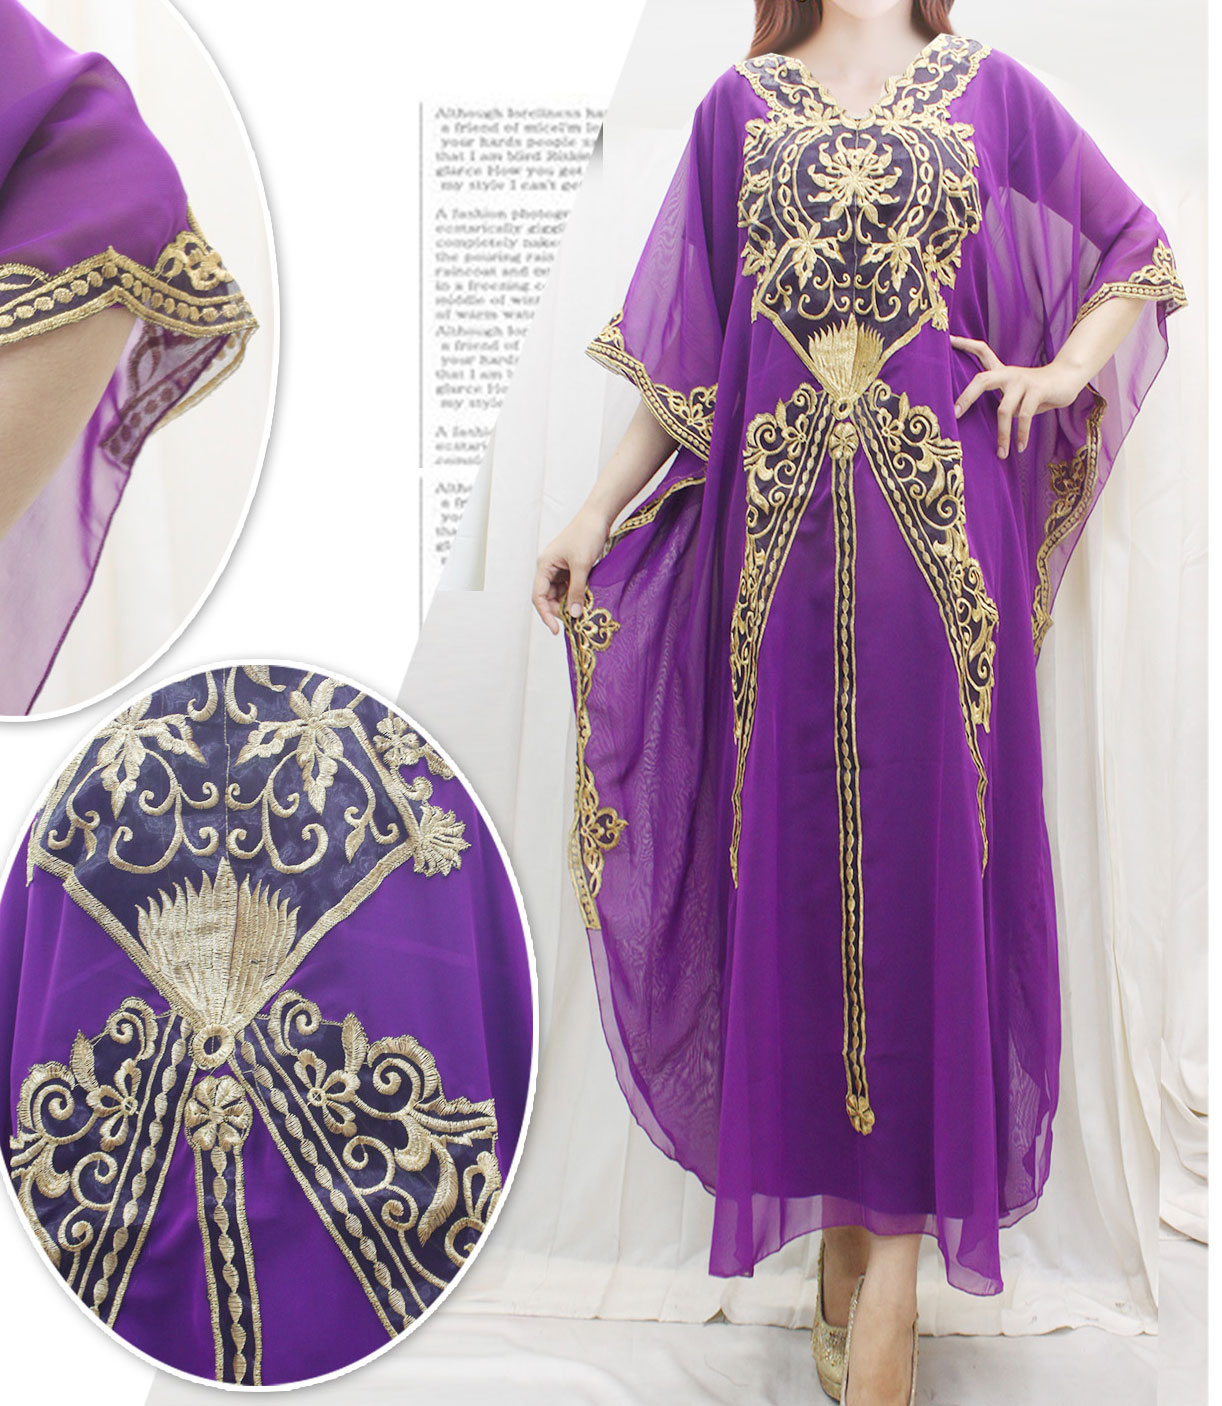 Fancy maxi dress wedding kaftan dress purple chiffon for Purple maxi dresses for weddings